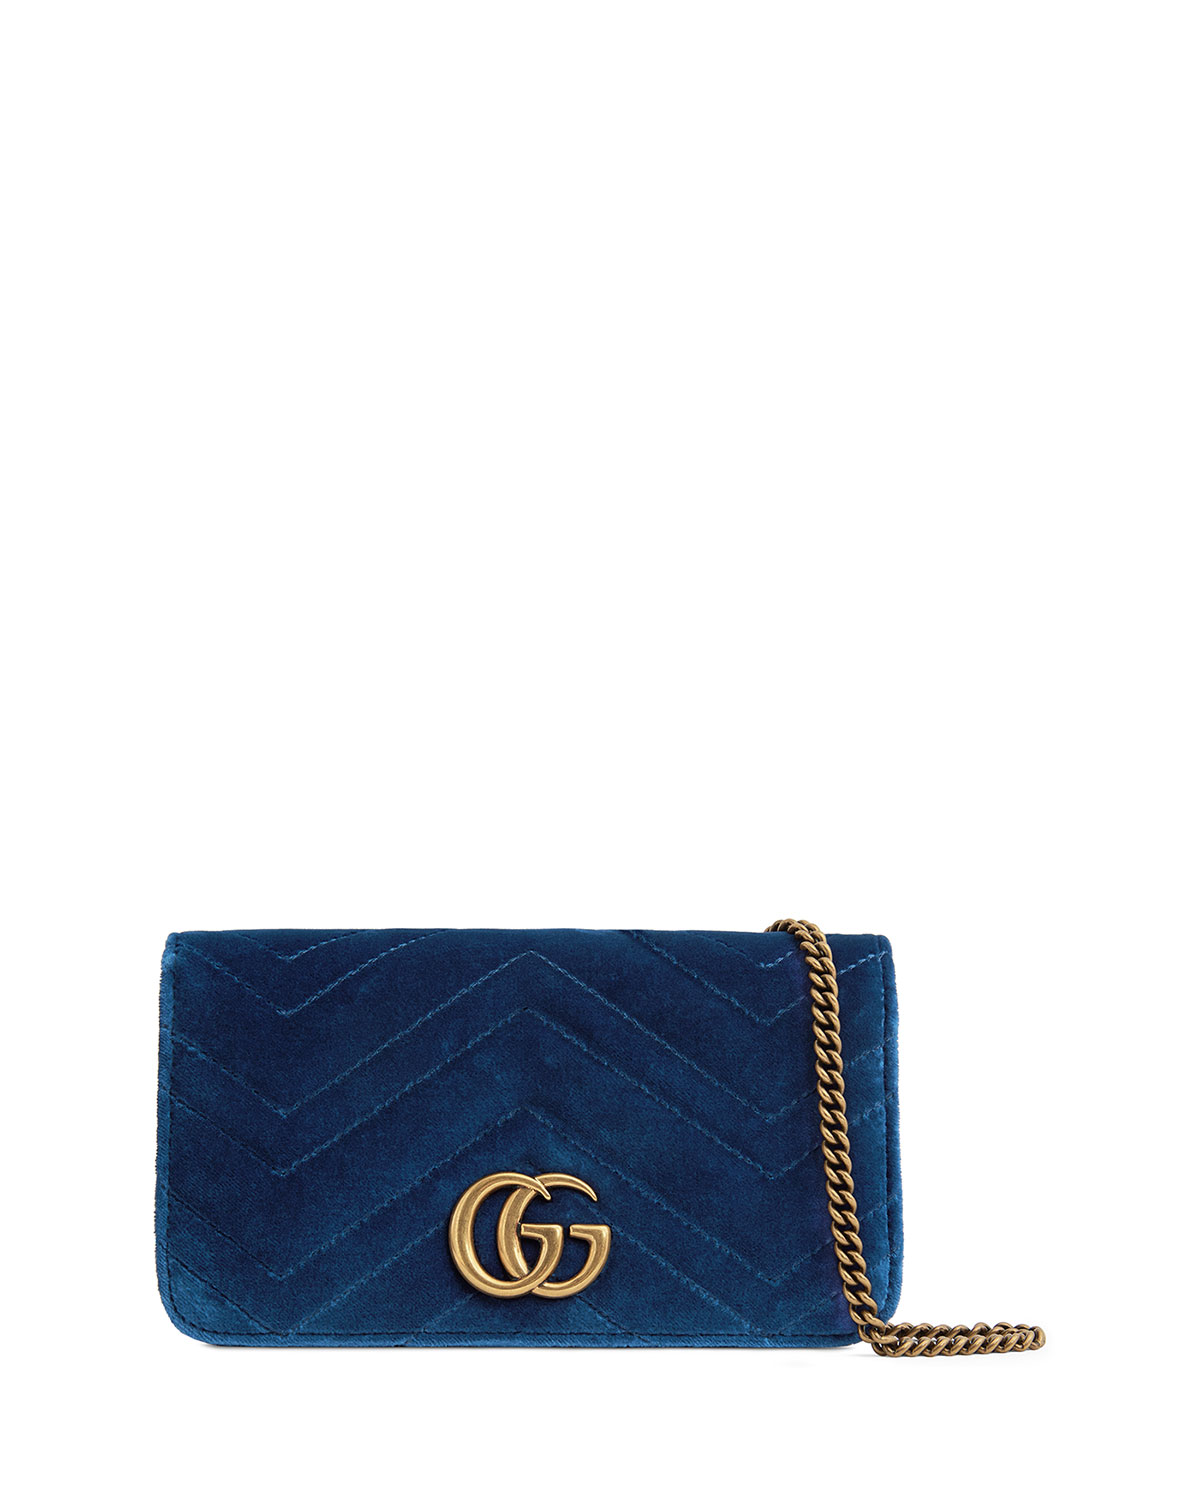 be2be8fd10bb Gucci GG Marmont Velvet Crossbody Bag | Neiman Marcus